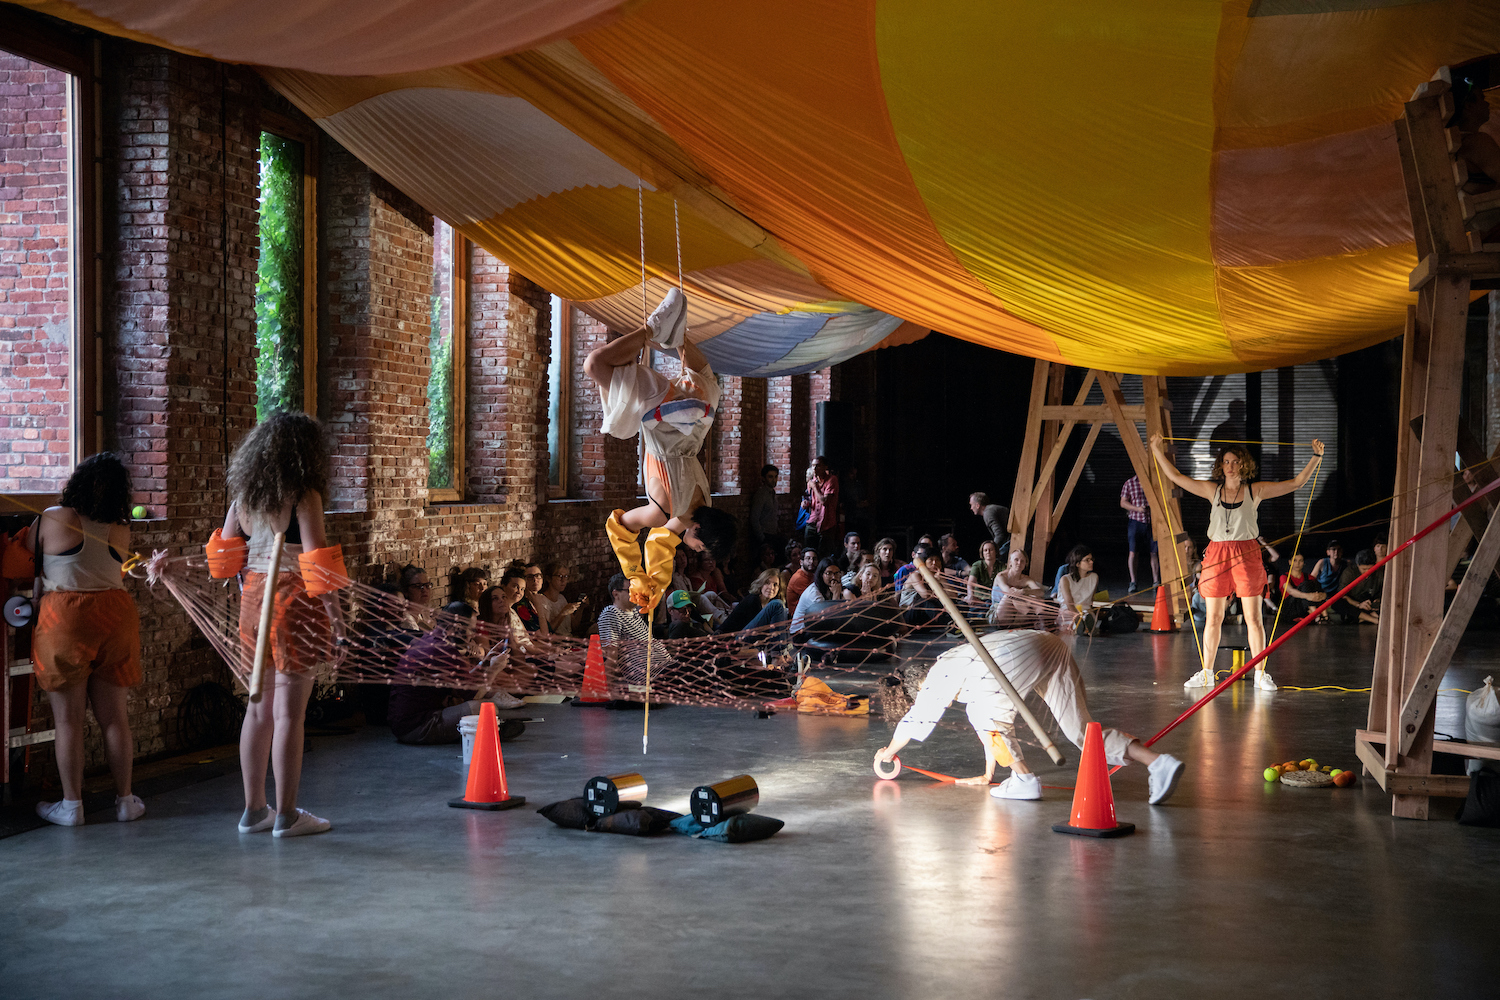 Five female performers enact various movements underneath a massive installation of hand-dyed parachute fabric.